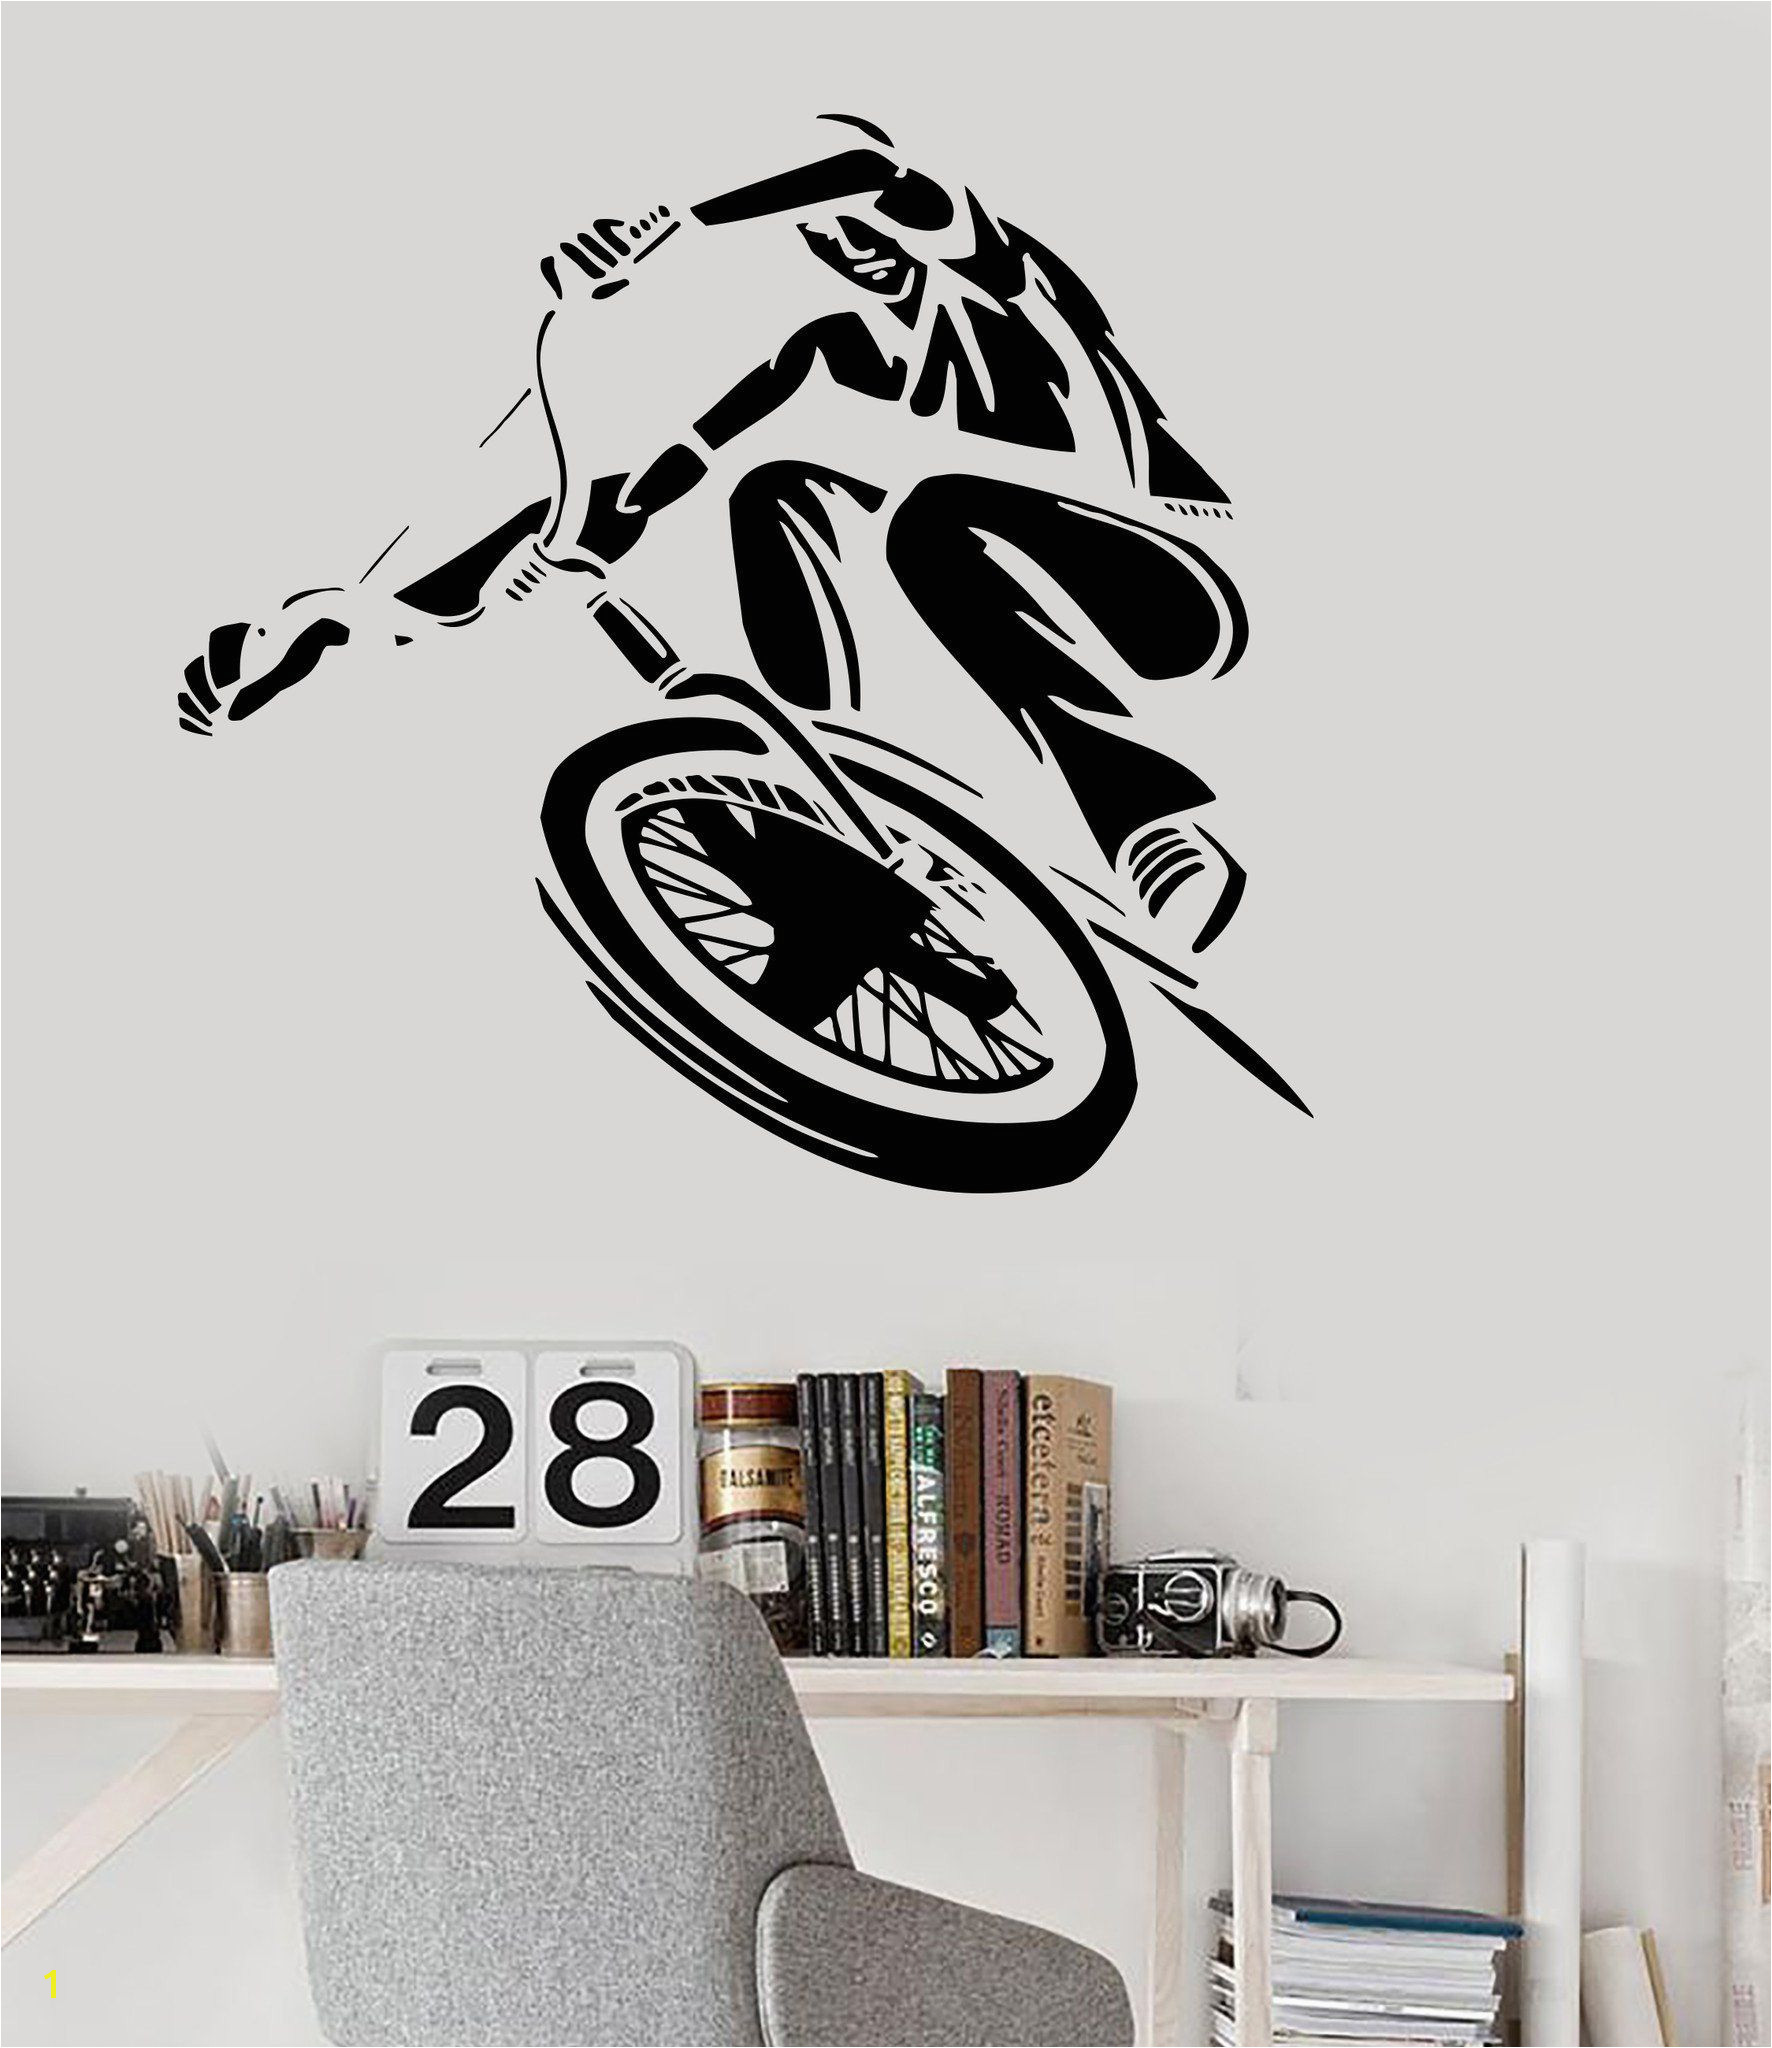 Vinyl Wall Decal BMX Bike Cyclist Teen Room Art Urban Style Stickers Unique Gift ig3157